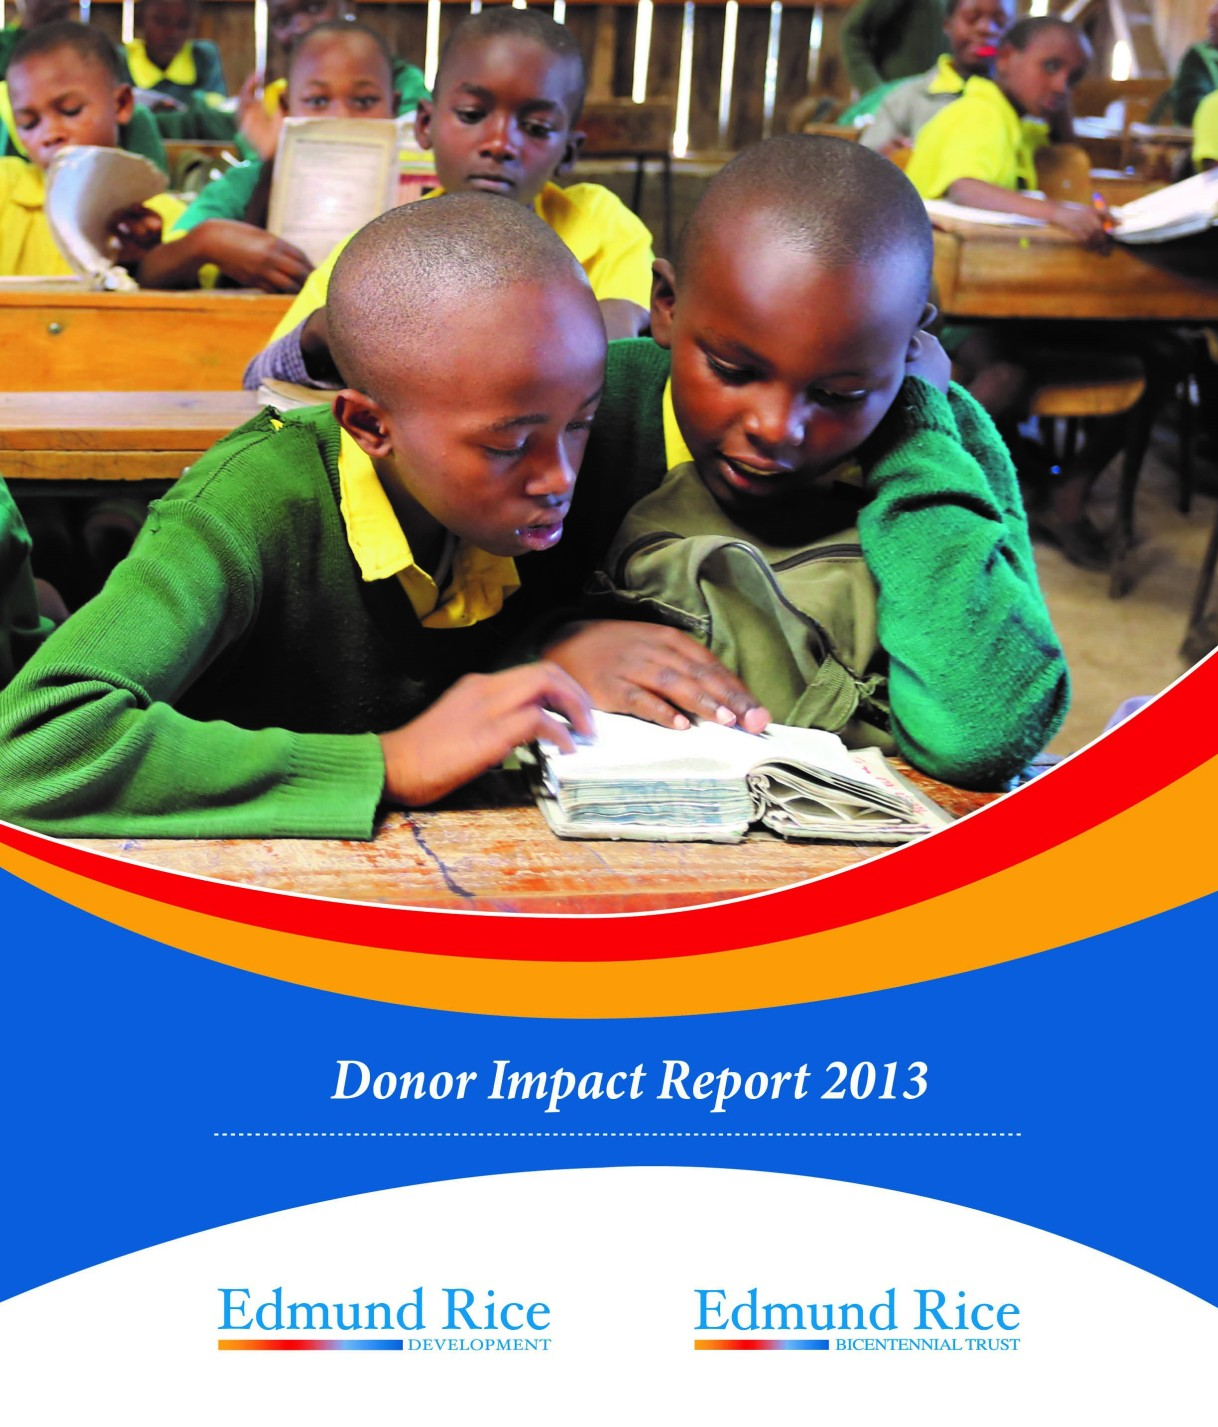 Edmund Rice Development Donor Impact Report 2013